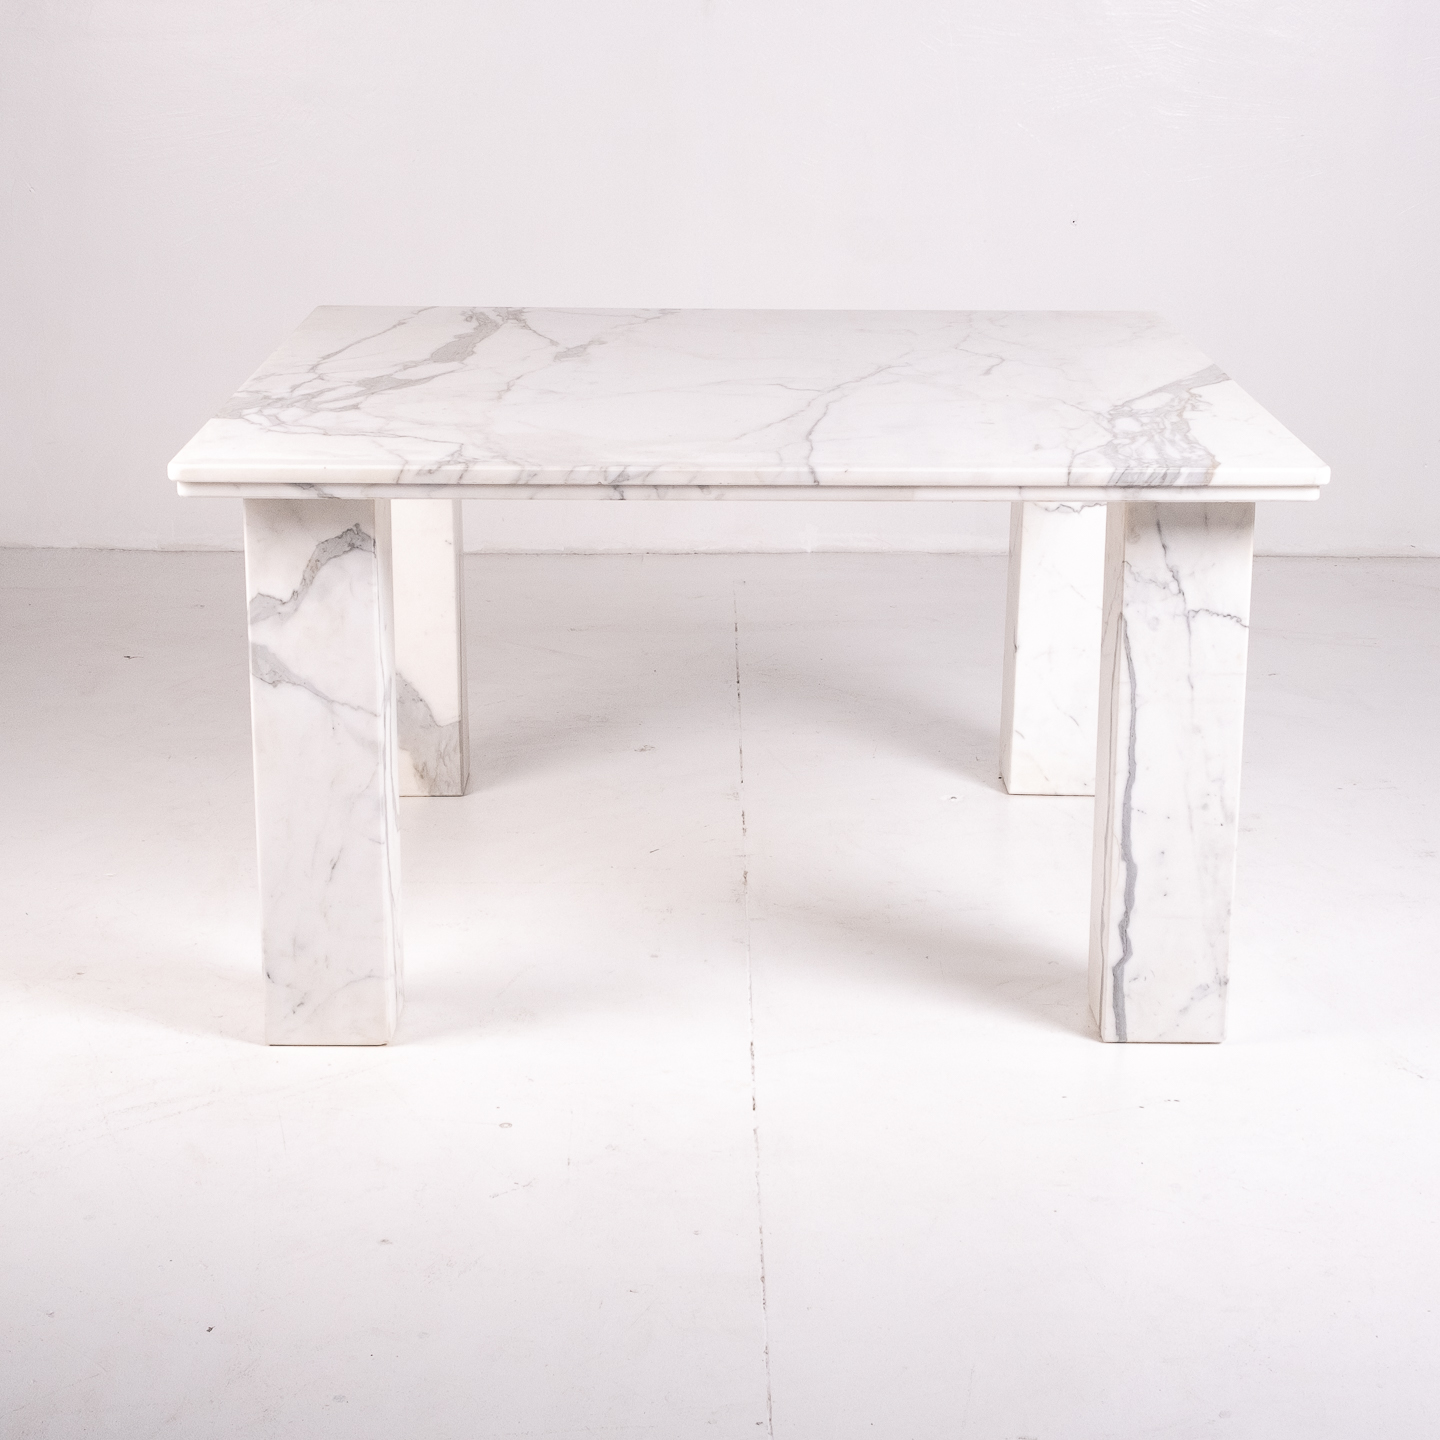 Square Dining Table In White Marble With Solid Square Legs, 1960s, The Netherlands 20